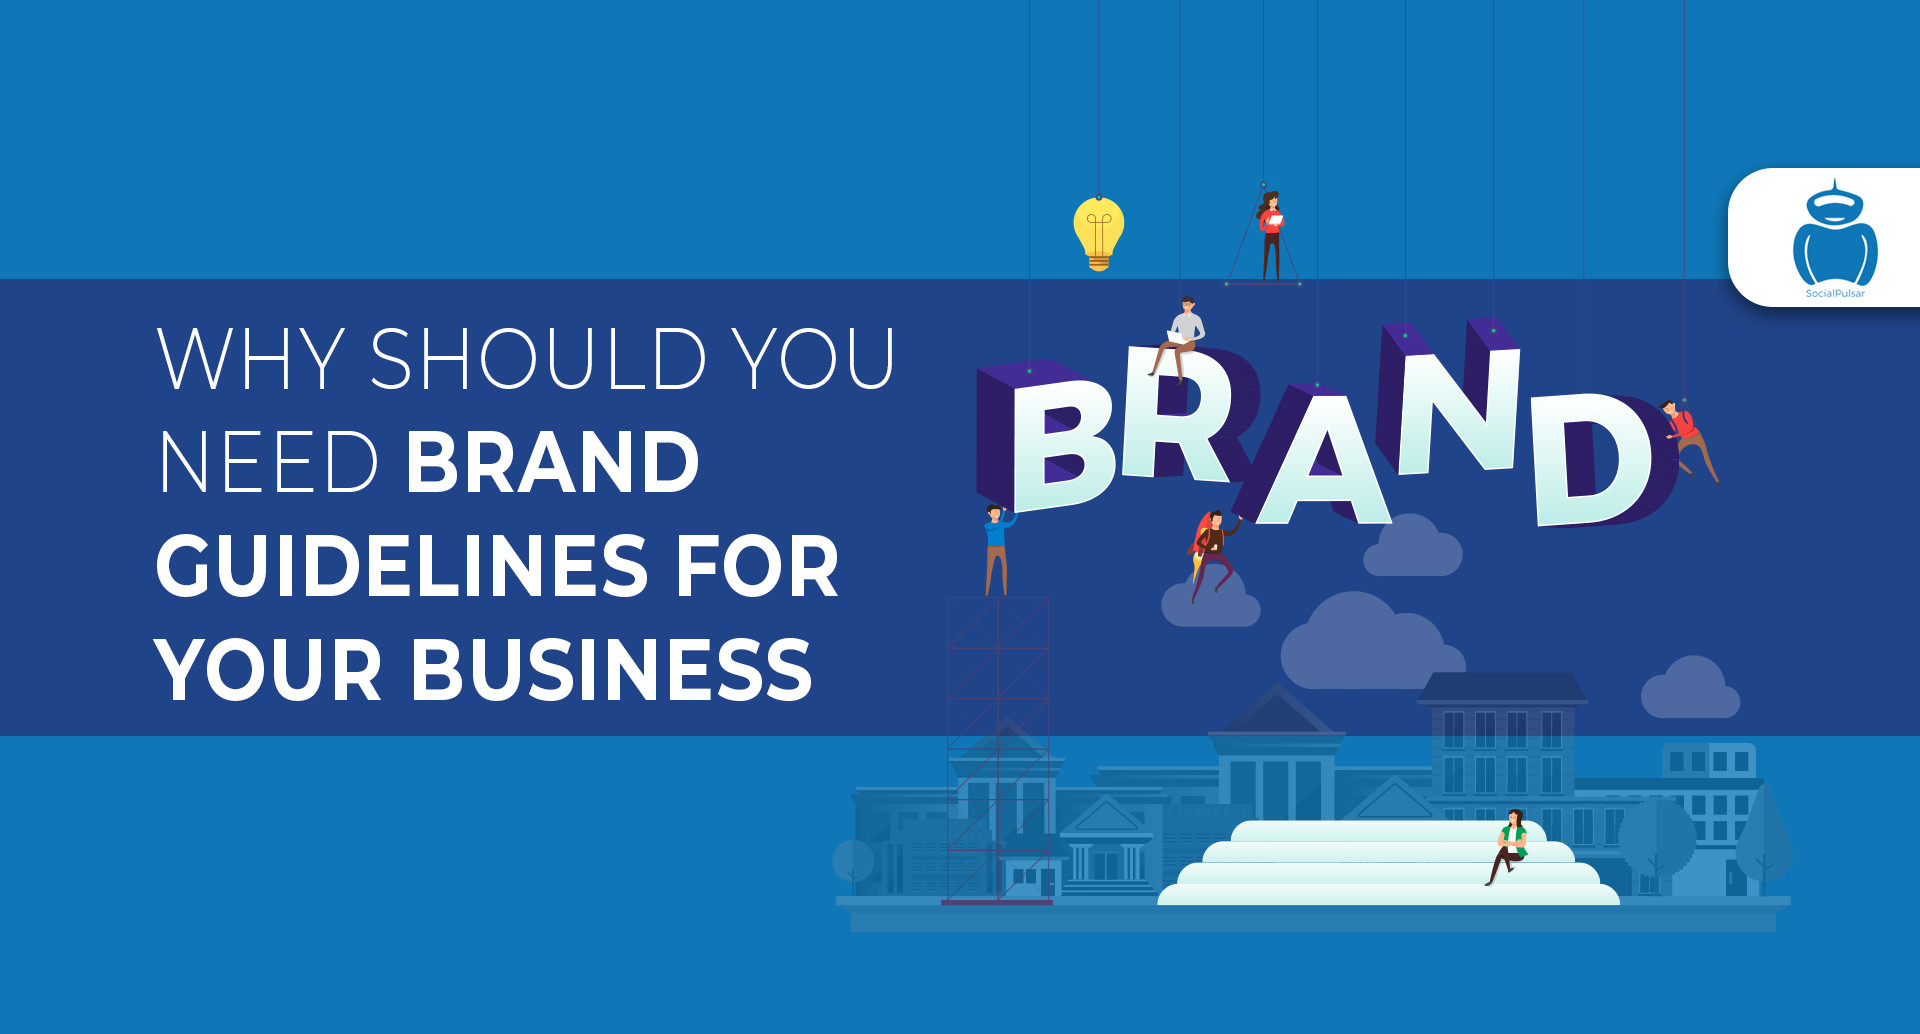 Why Should You Need Brand Guidelines For Your Business